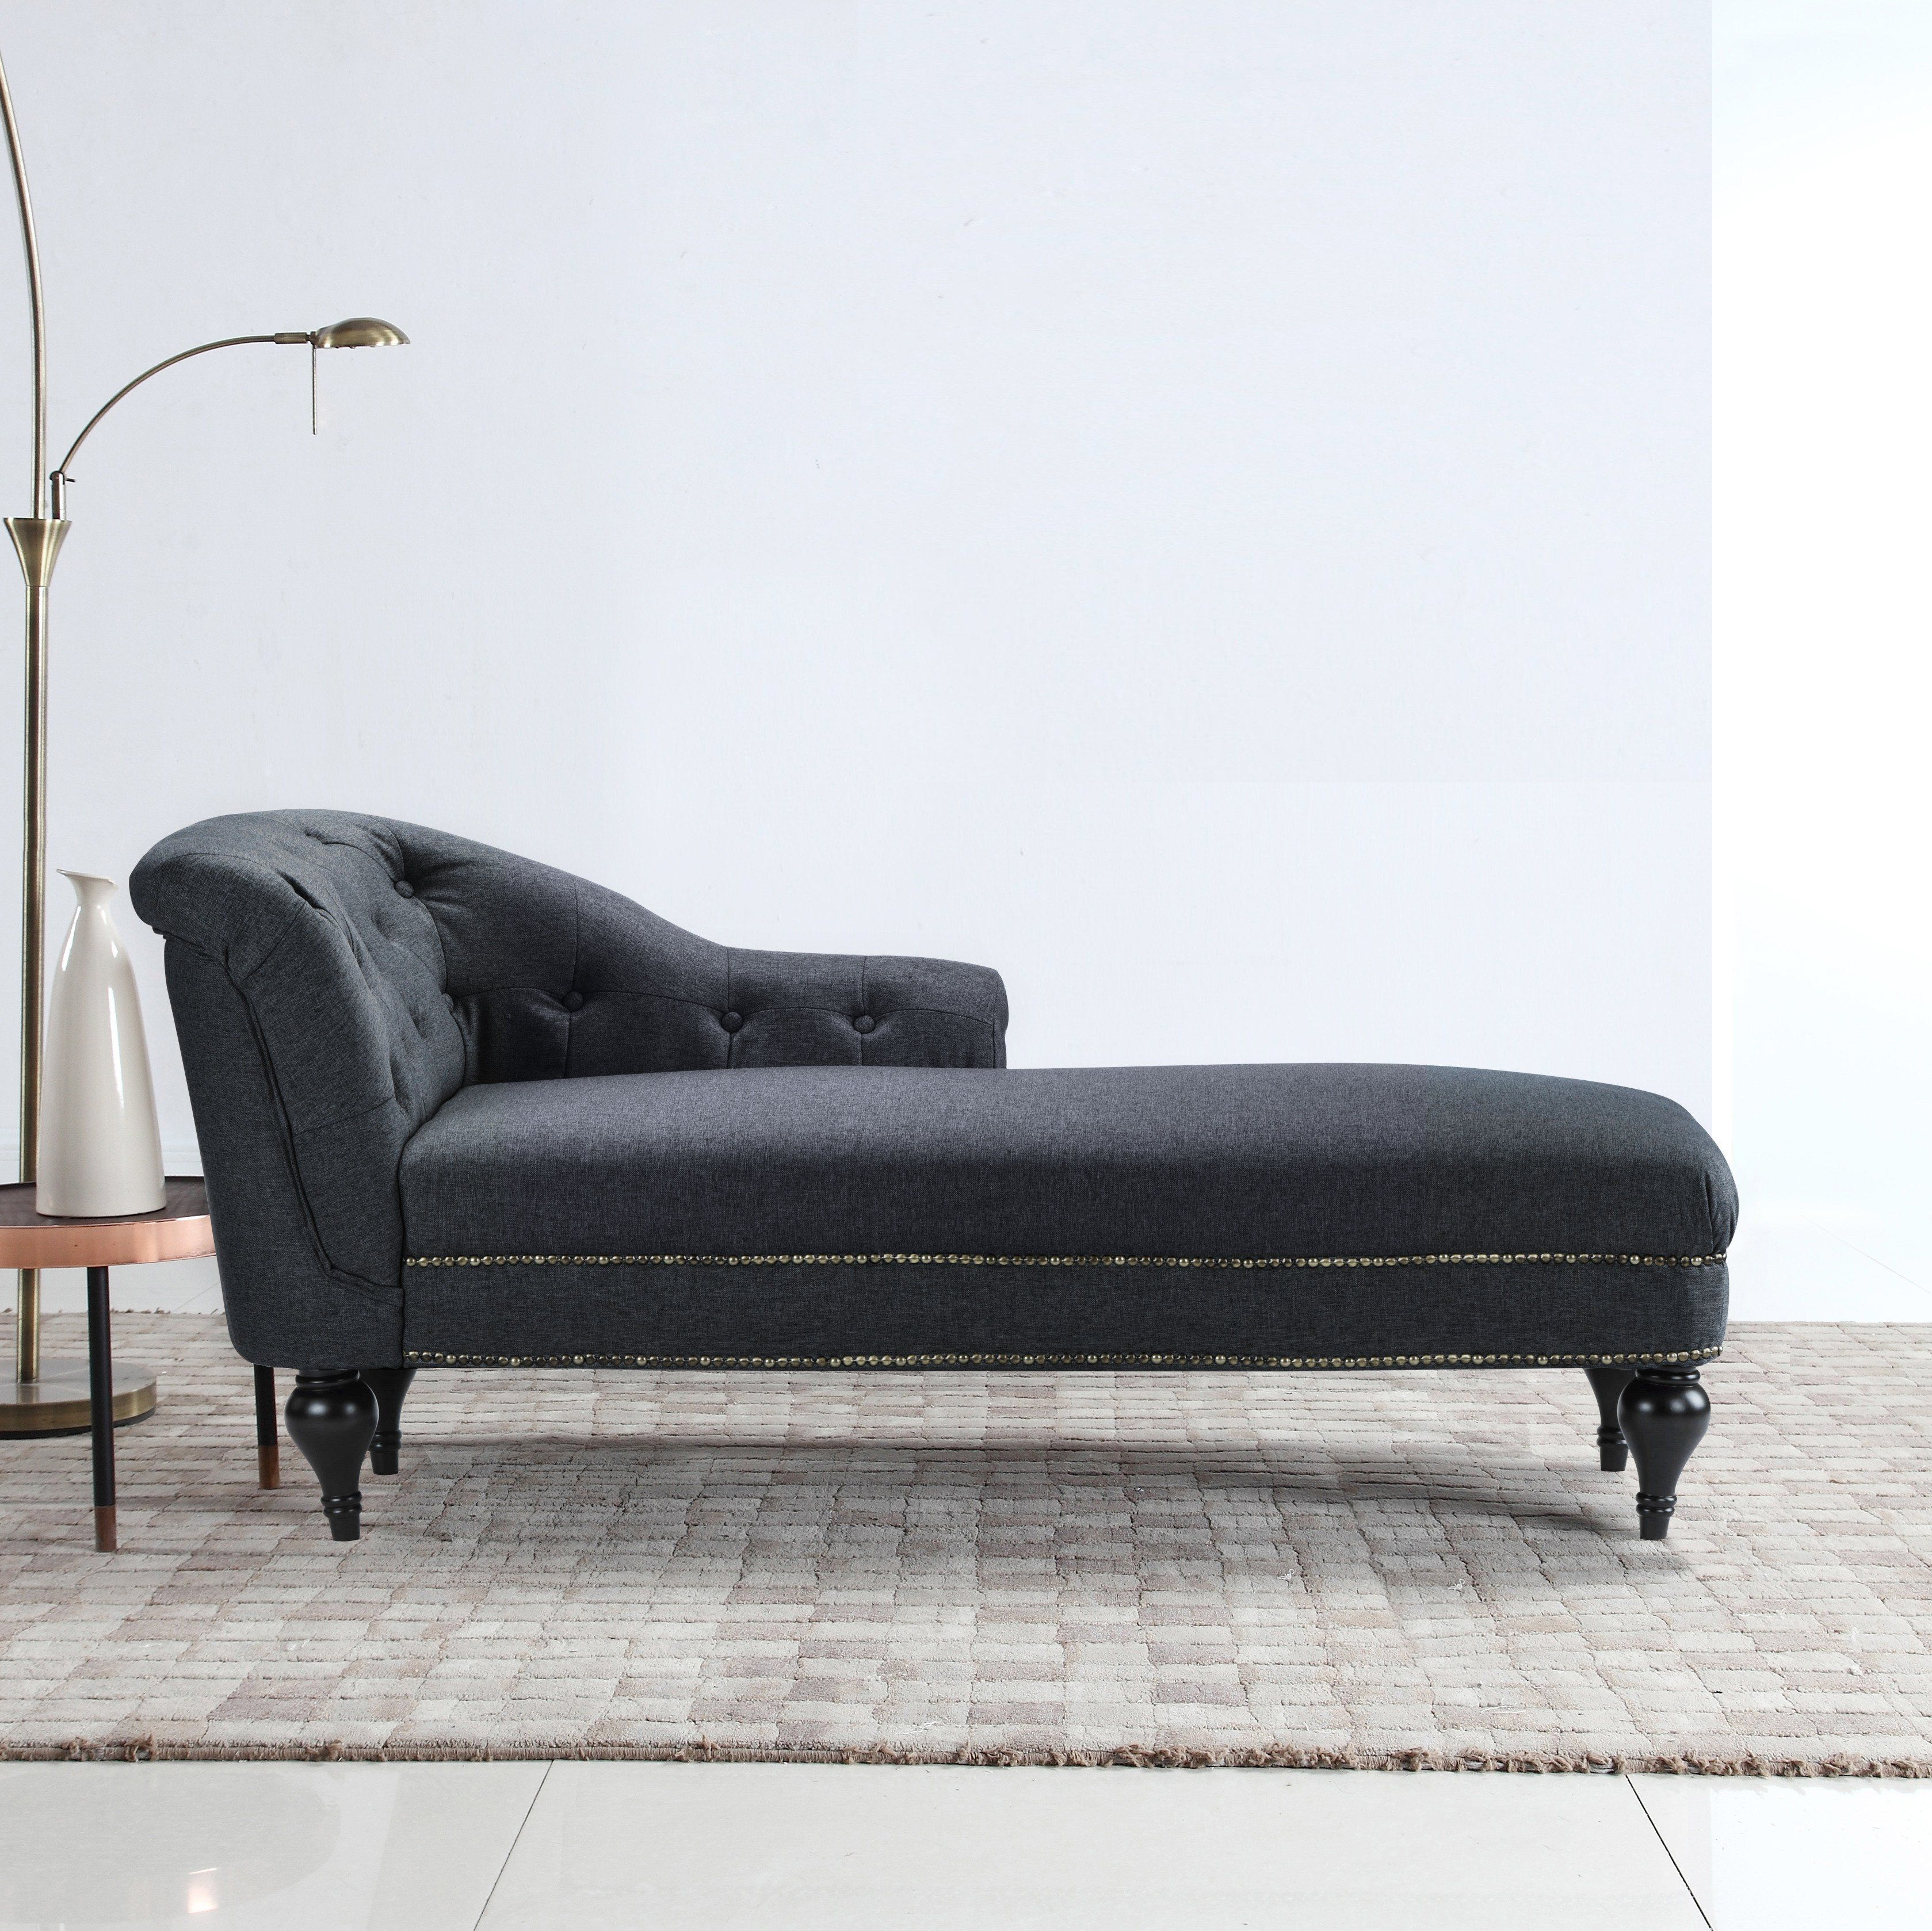 Surprising Isabel Tufted Chaise Lounge Furniture Tufted Chaise Squirreltailoven Fun Painted Chair Ideas Images Squirreltailovenorg